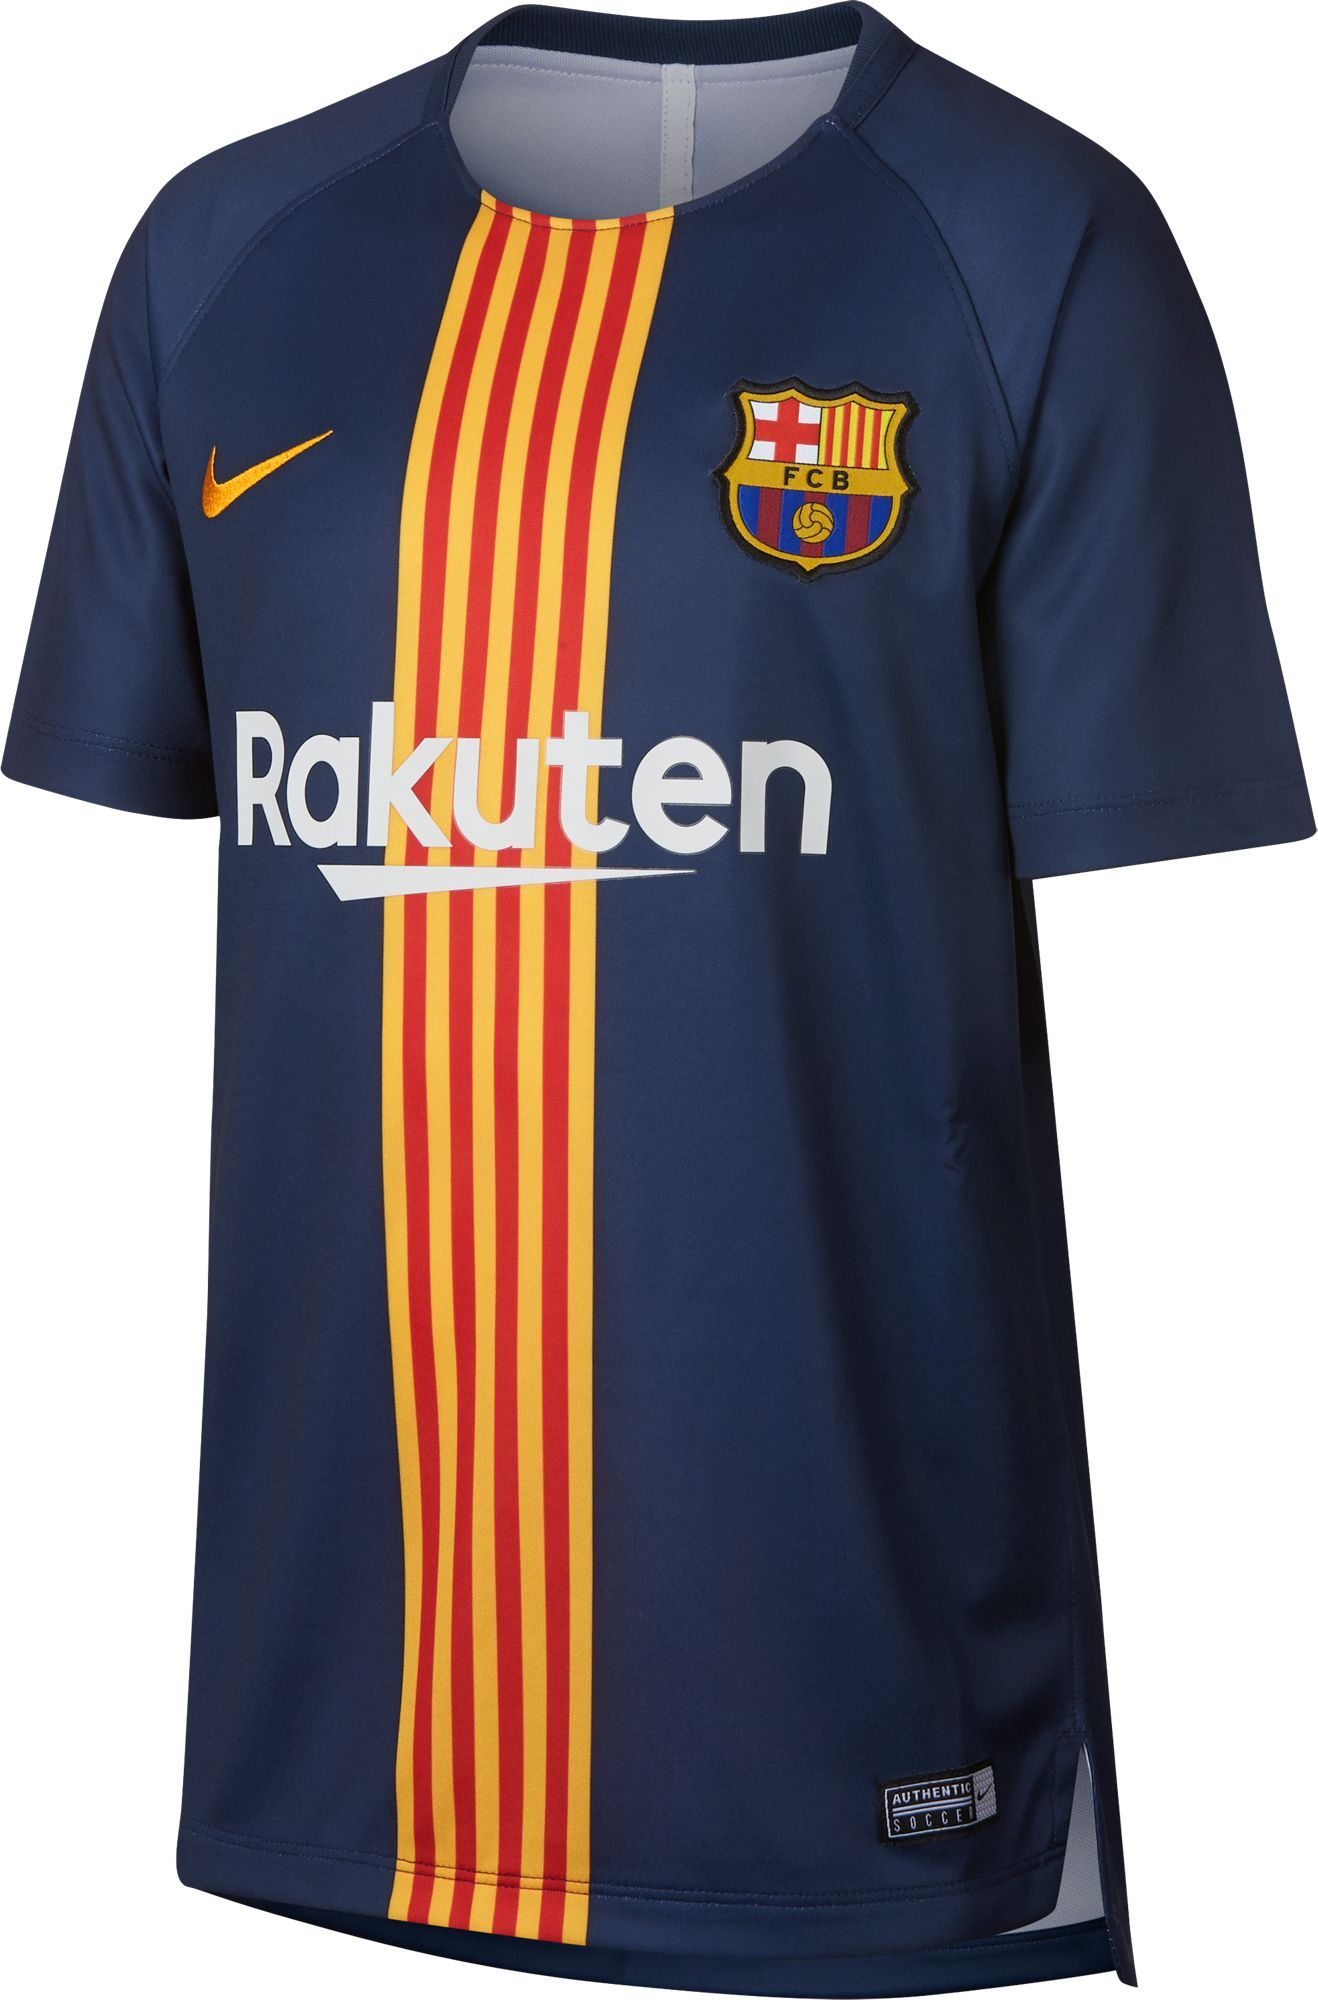 67a5236efd8 Nike Youth FC Barcelona Black Navy Prematch Top